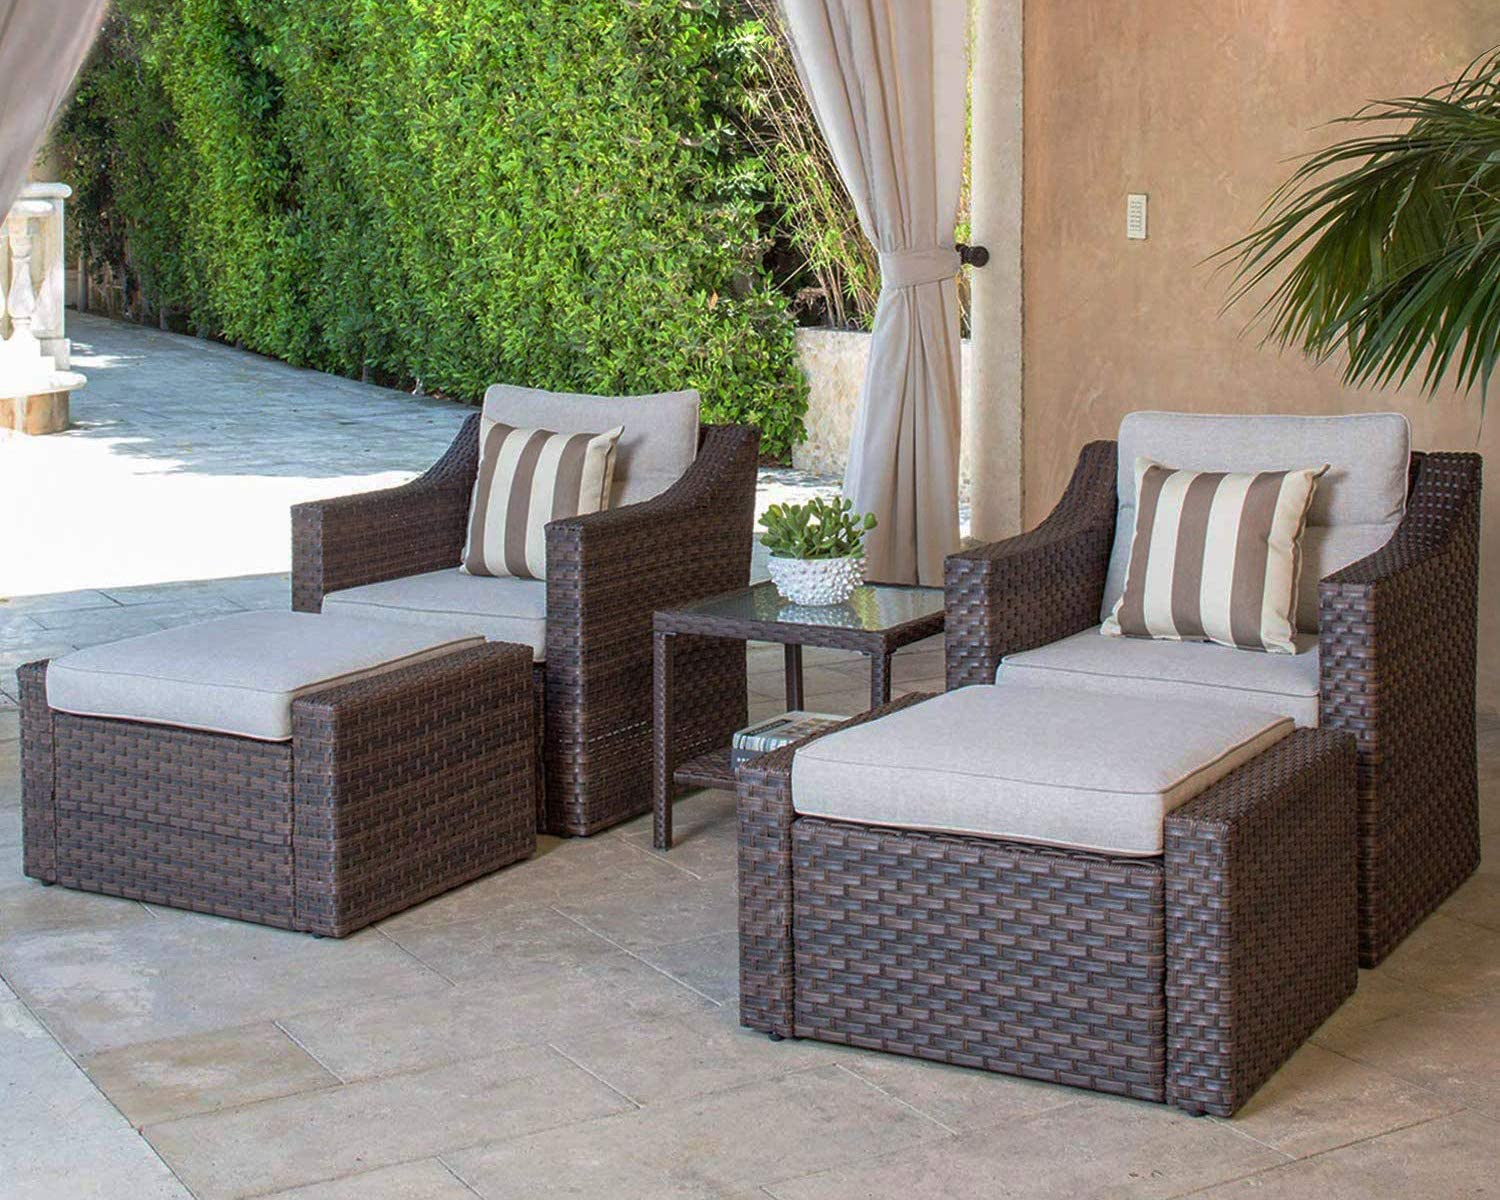 Amazon Com Solaura 5 Piece Sofa Outdoor Furniture Set Wicker Lounge Chair Ottoman With Neutral Beige Cushions Glass Coffee Side Table Brown Garden Outdoor